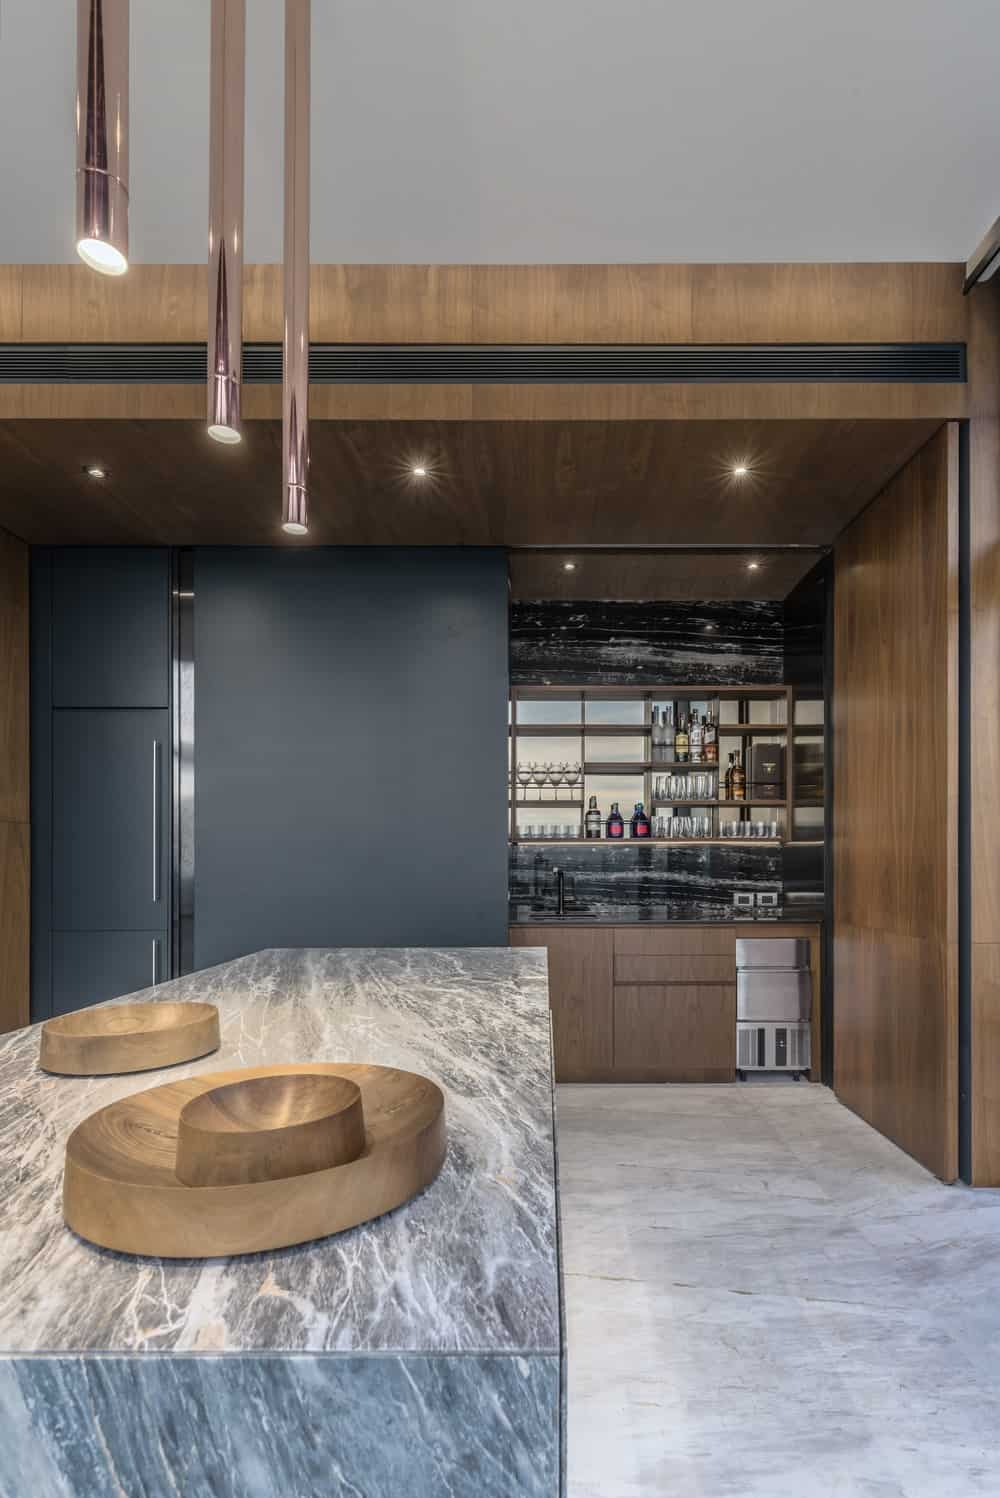 The black structure on the side of the island can also open another way to reveal the liquor cabinet and thus convert the kitchen into a bar.